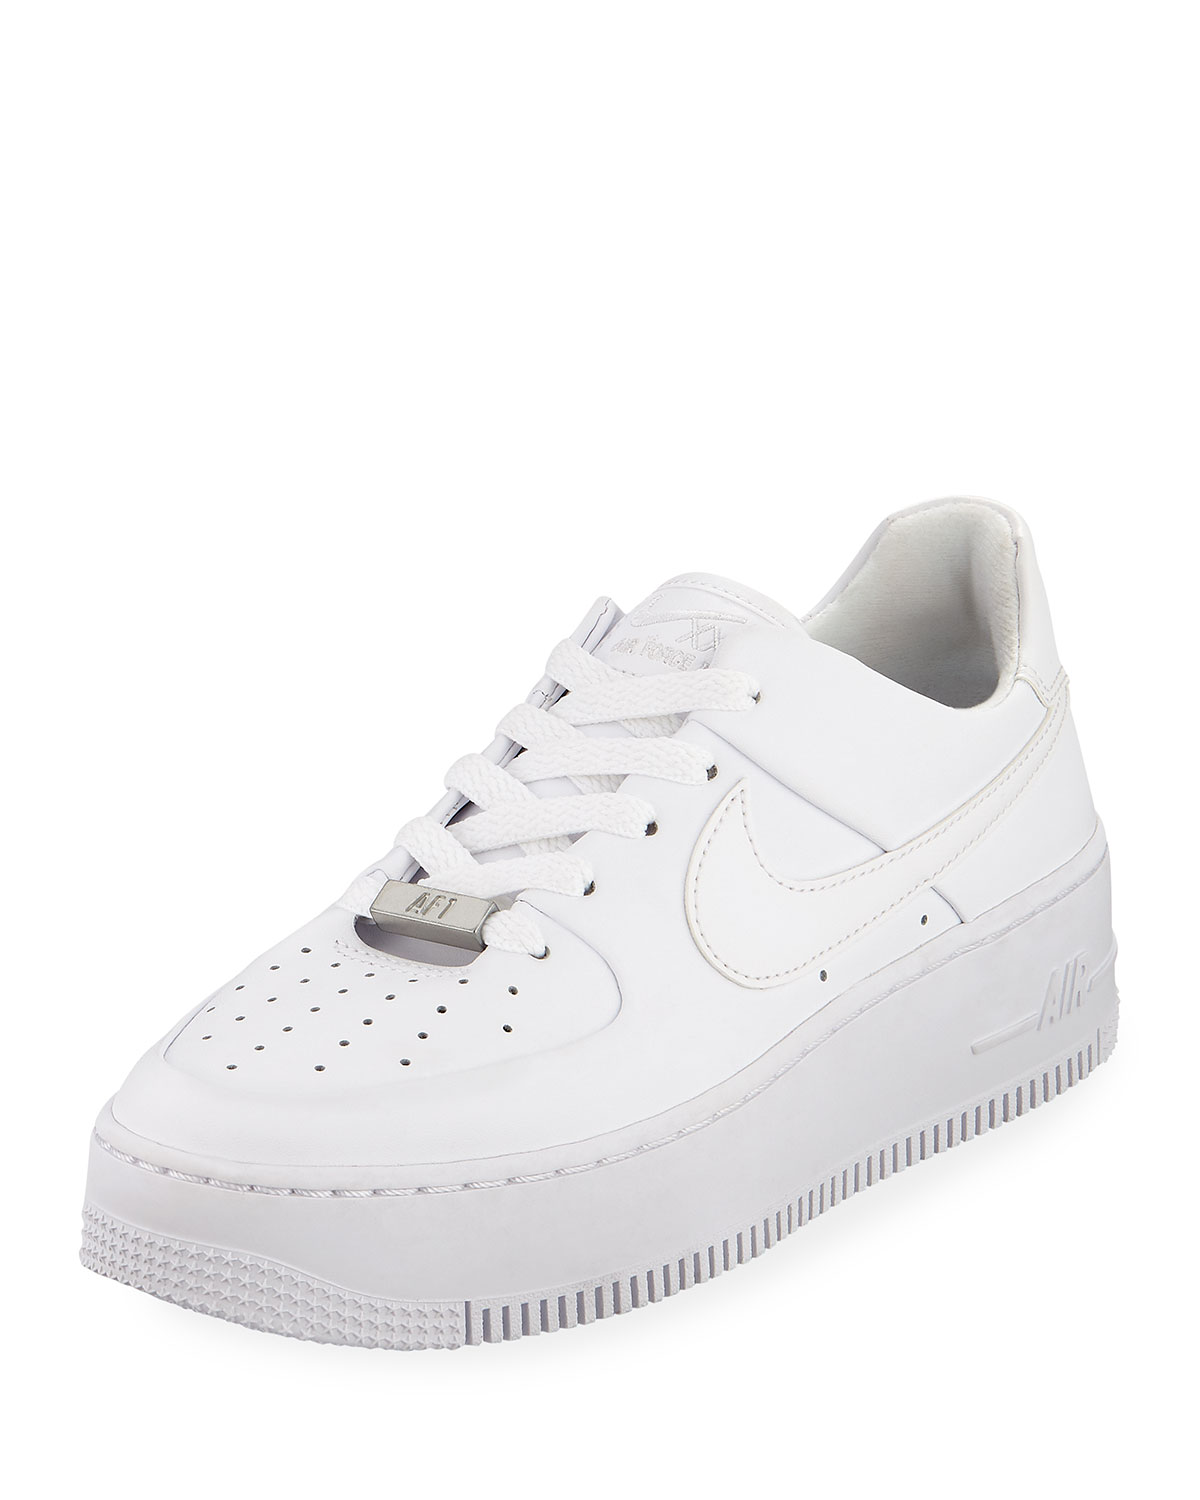 best sneakers f1dd3 f4677 Nike Air Force 1 Sage Low-Top Sneakers